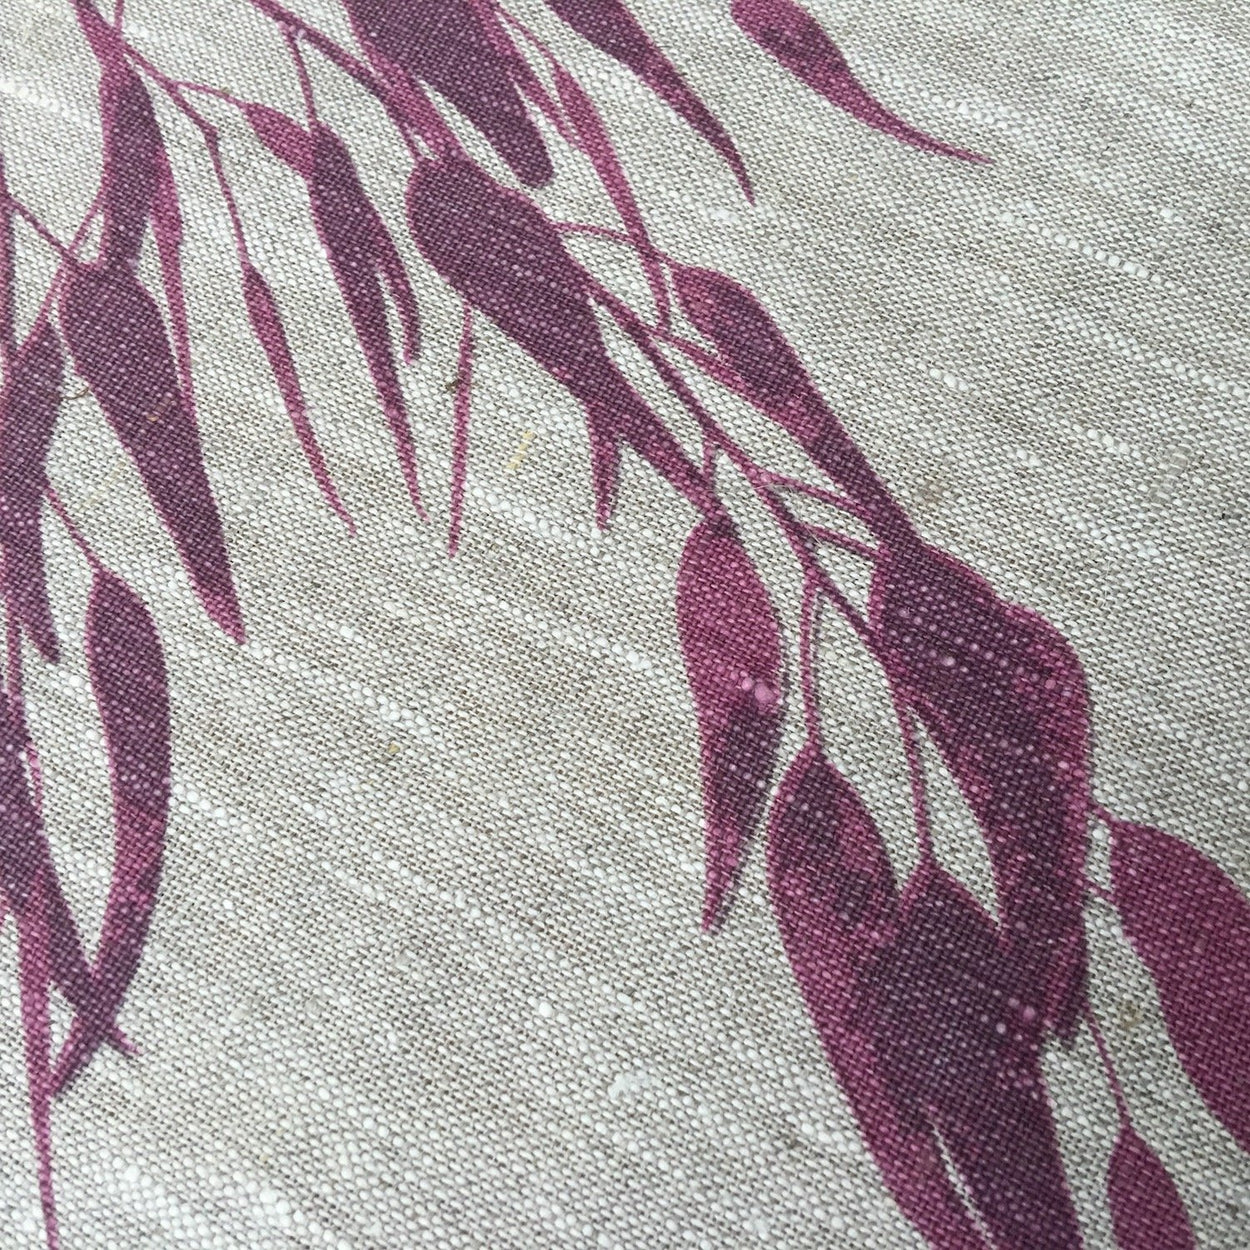 Photo of a Eucalyptus screenprinted on placemats, close-up.